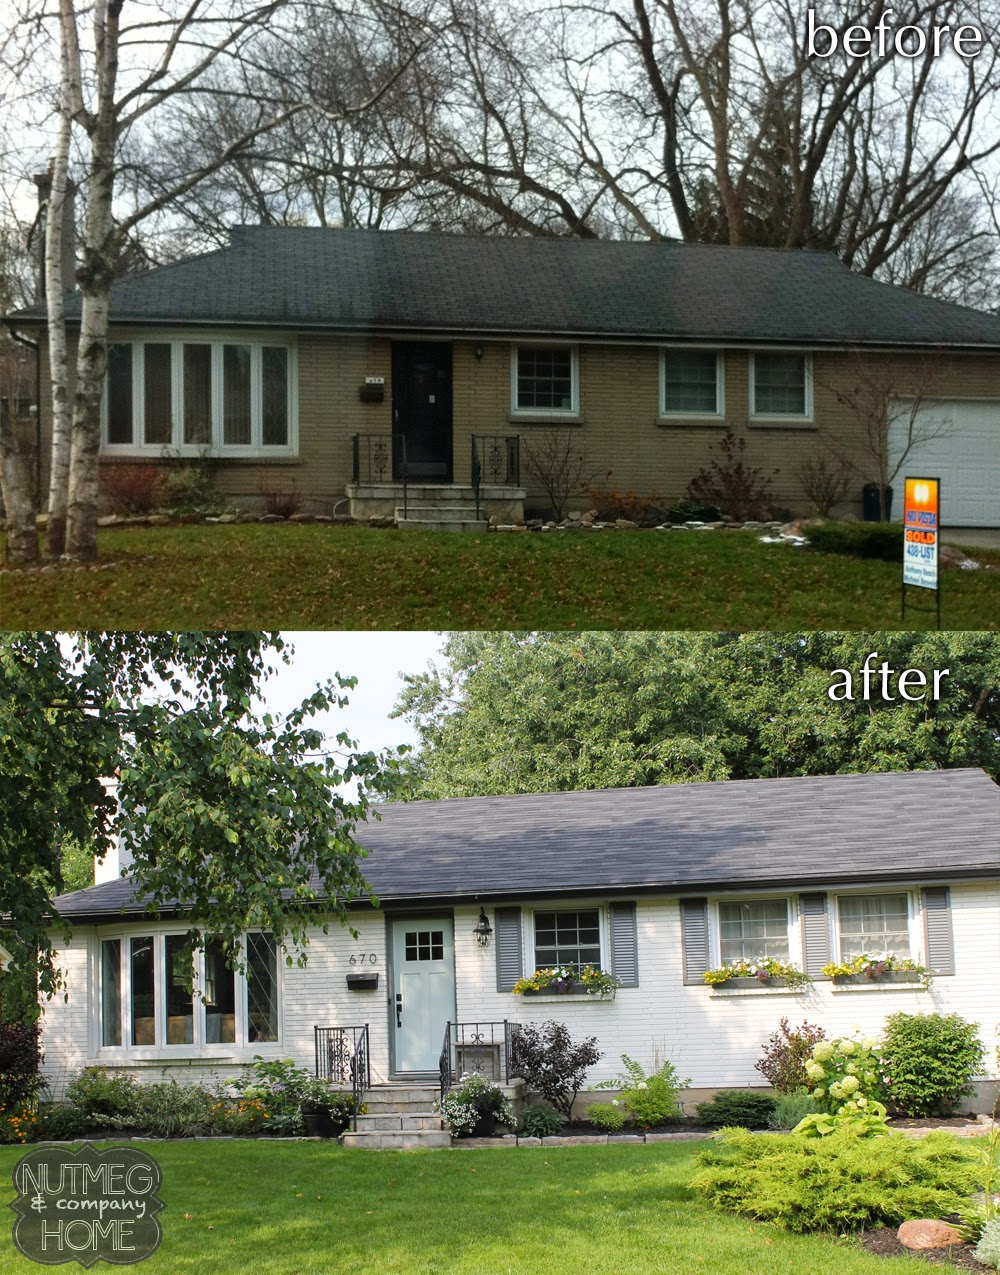 Nutmeg & Company Home: Before & After: Curb Appeal